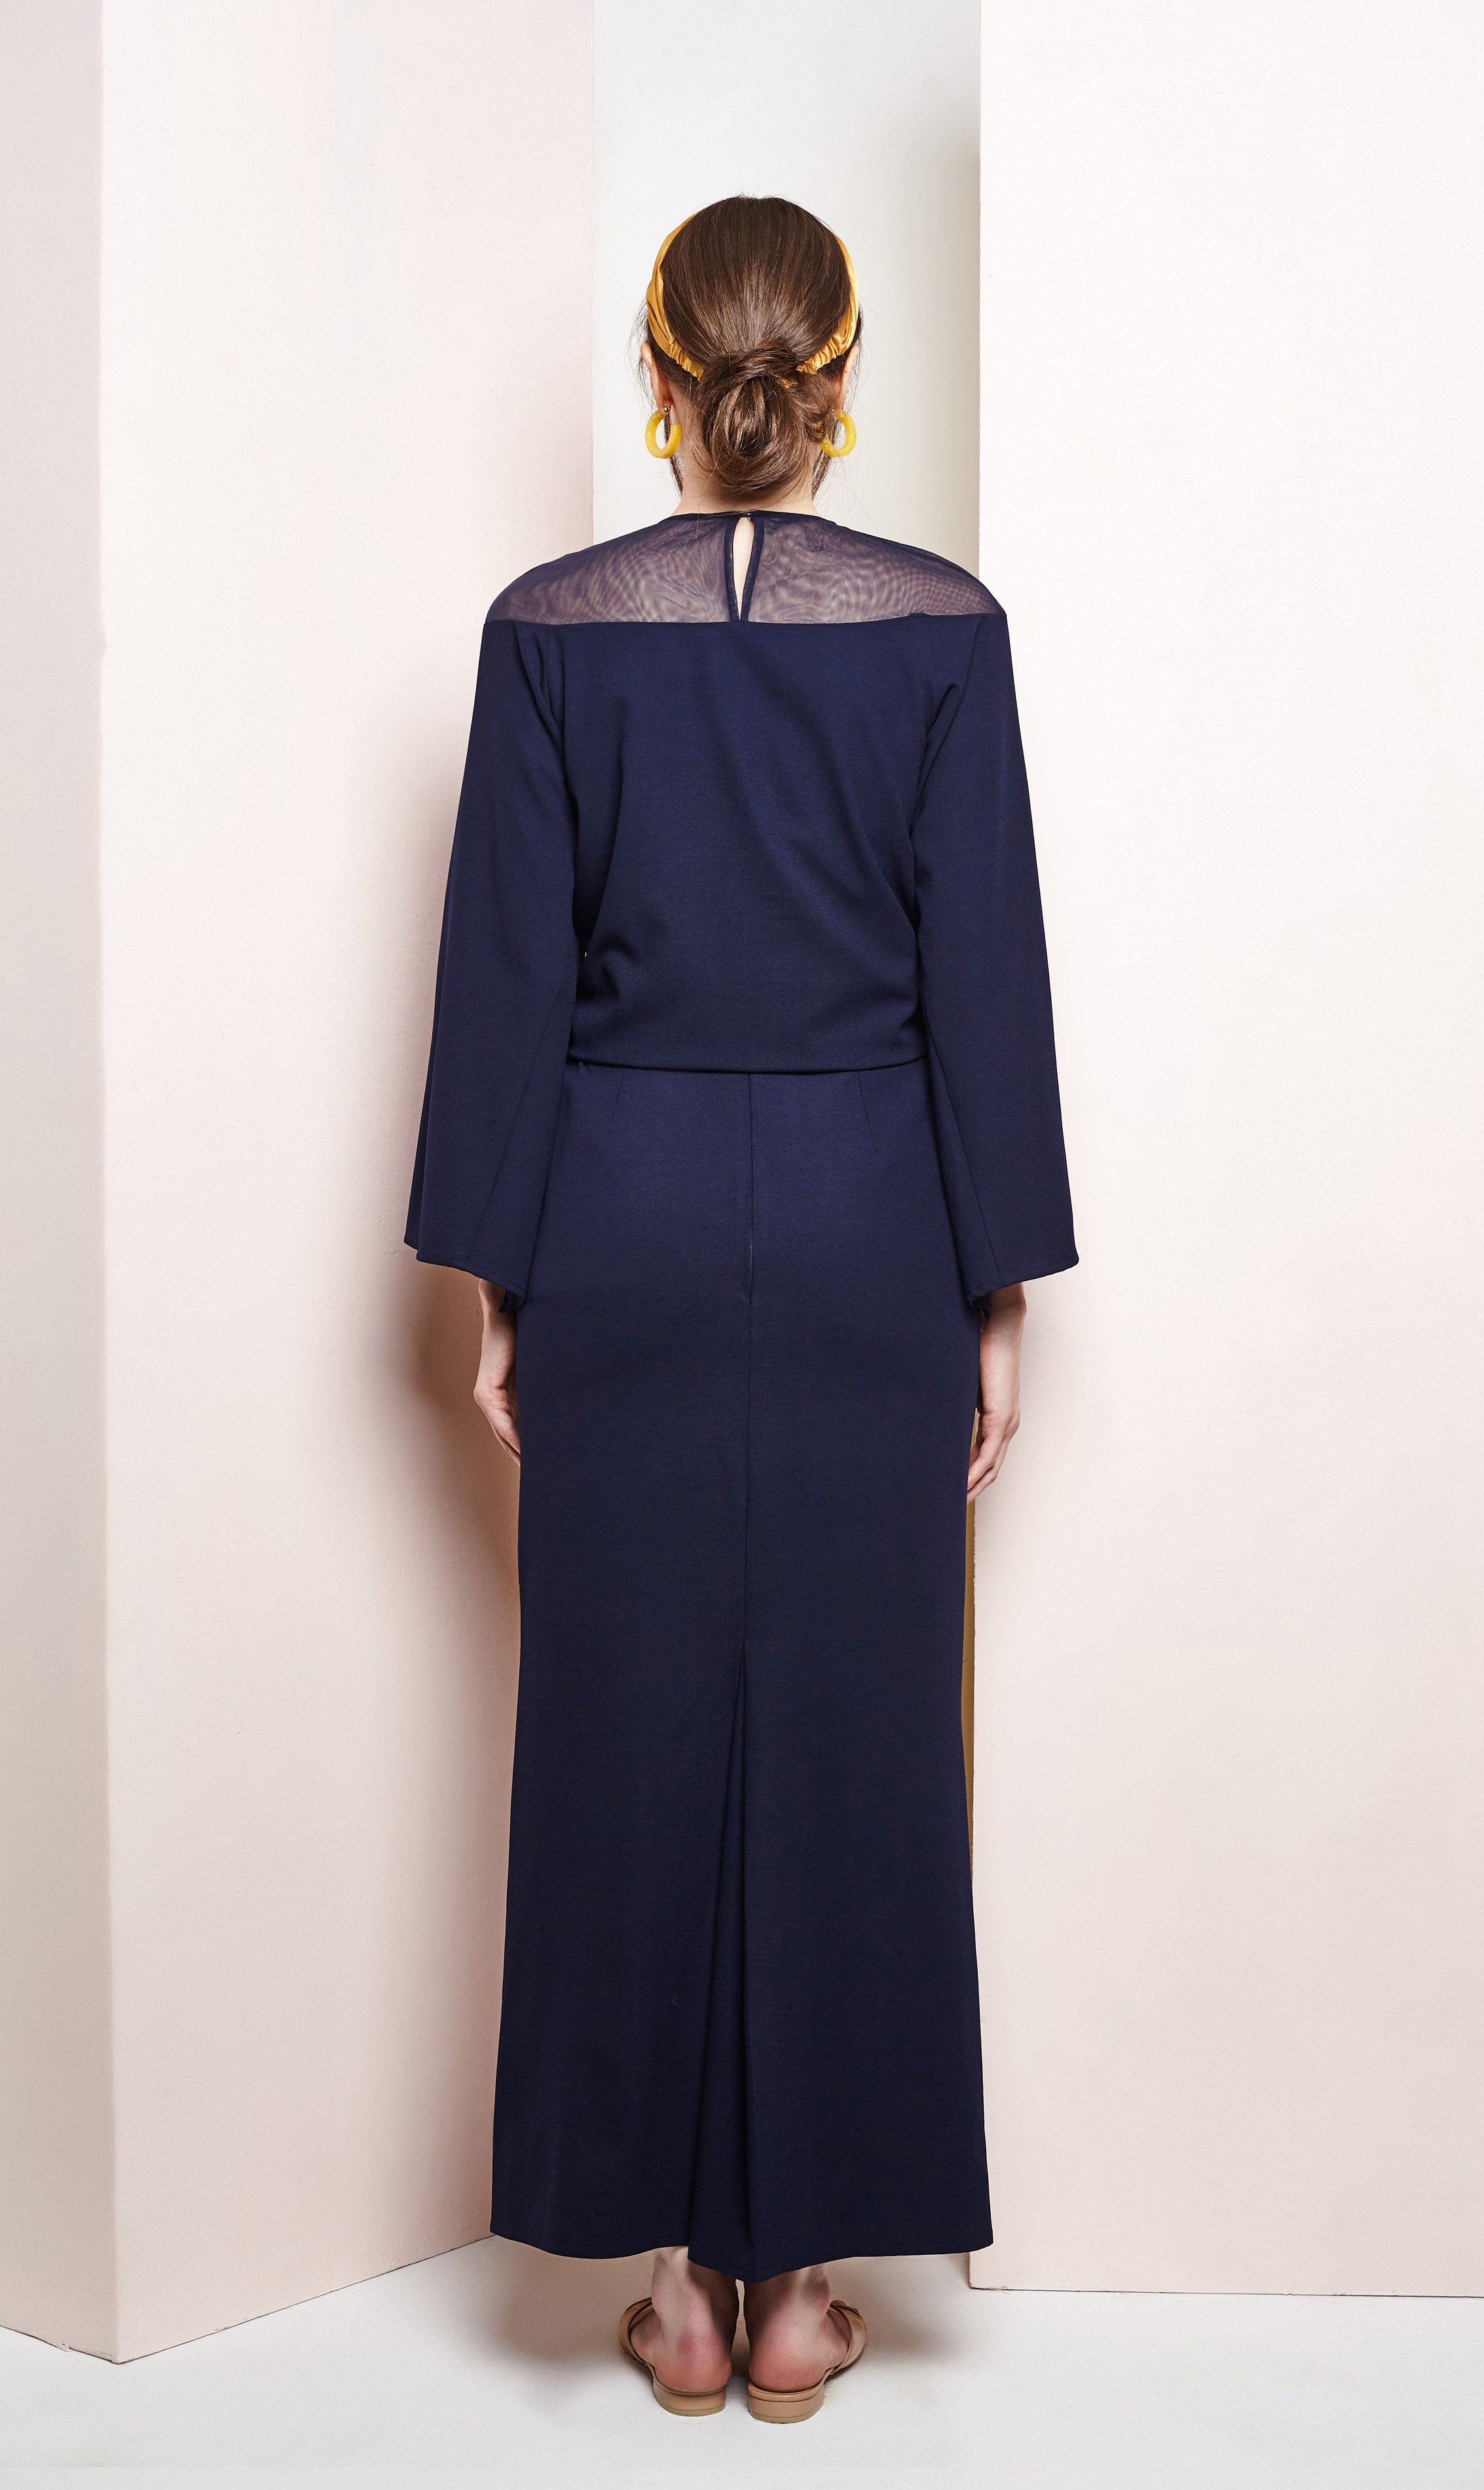 Hane Kurung in Navy Blue